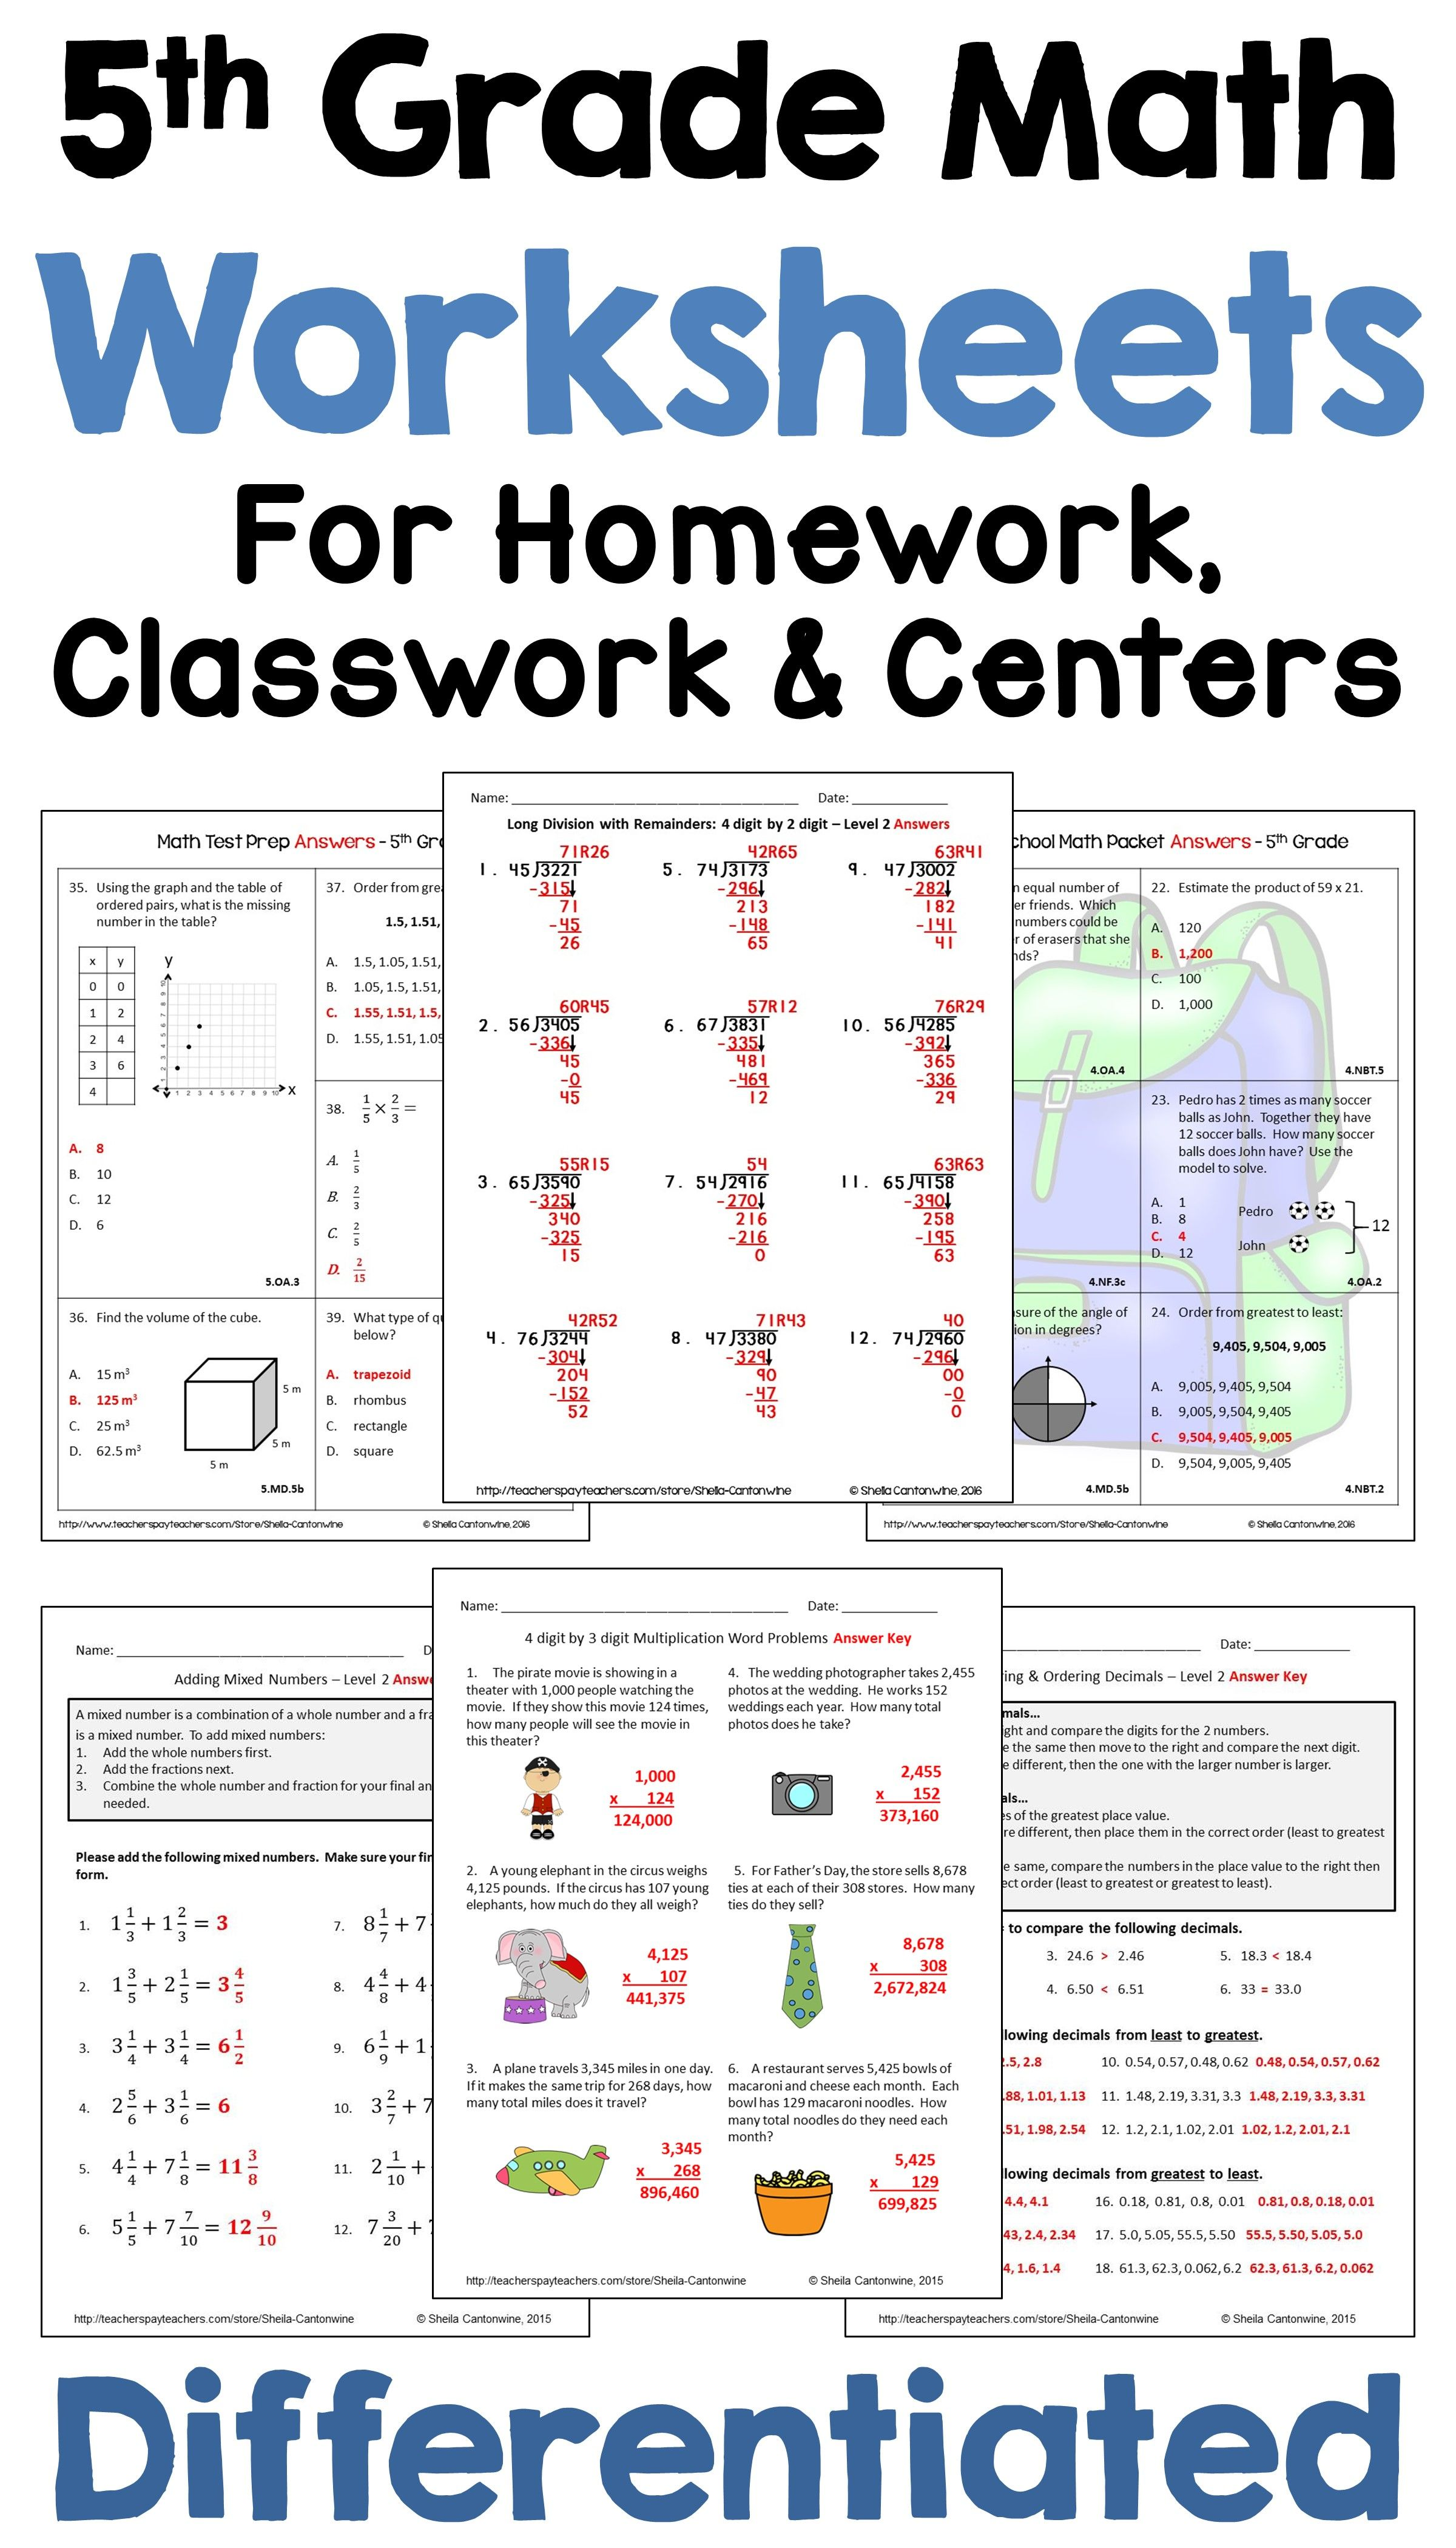 hight resolution of 5th Grade Math Differentiated Worksheets for Homework